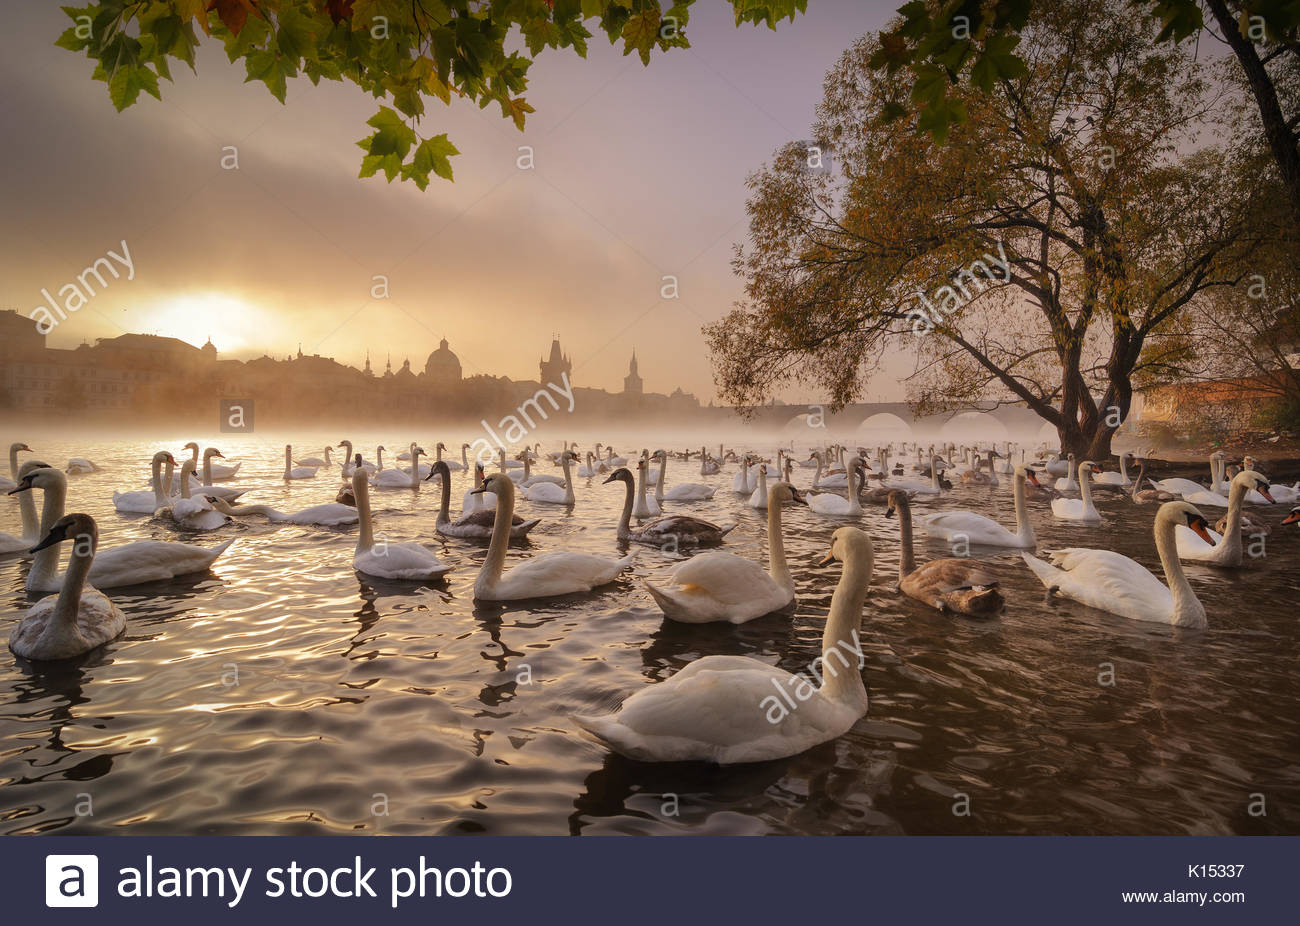 Amaying morning sunrise with swans near Charles bridge, Prague, Czech republic - Stock Image